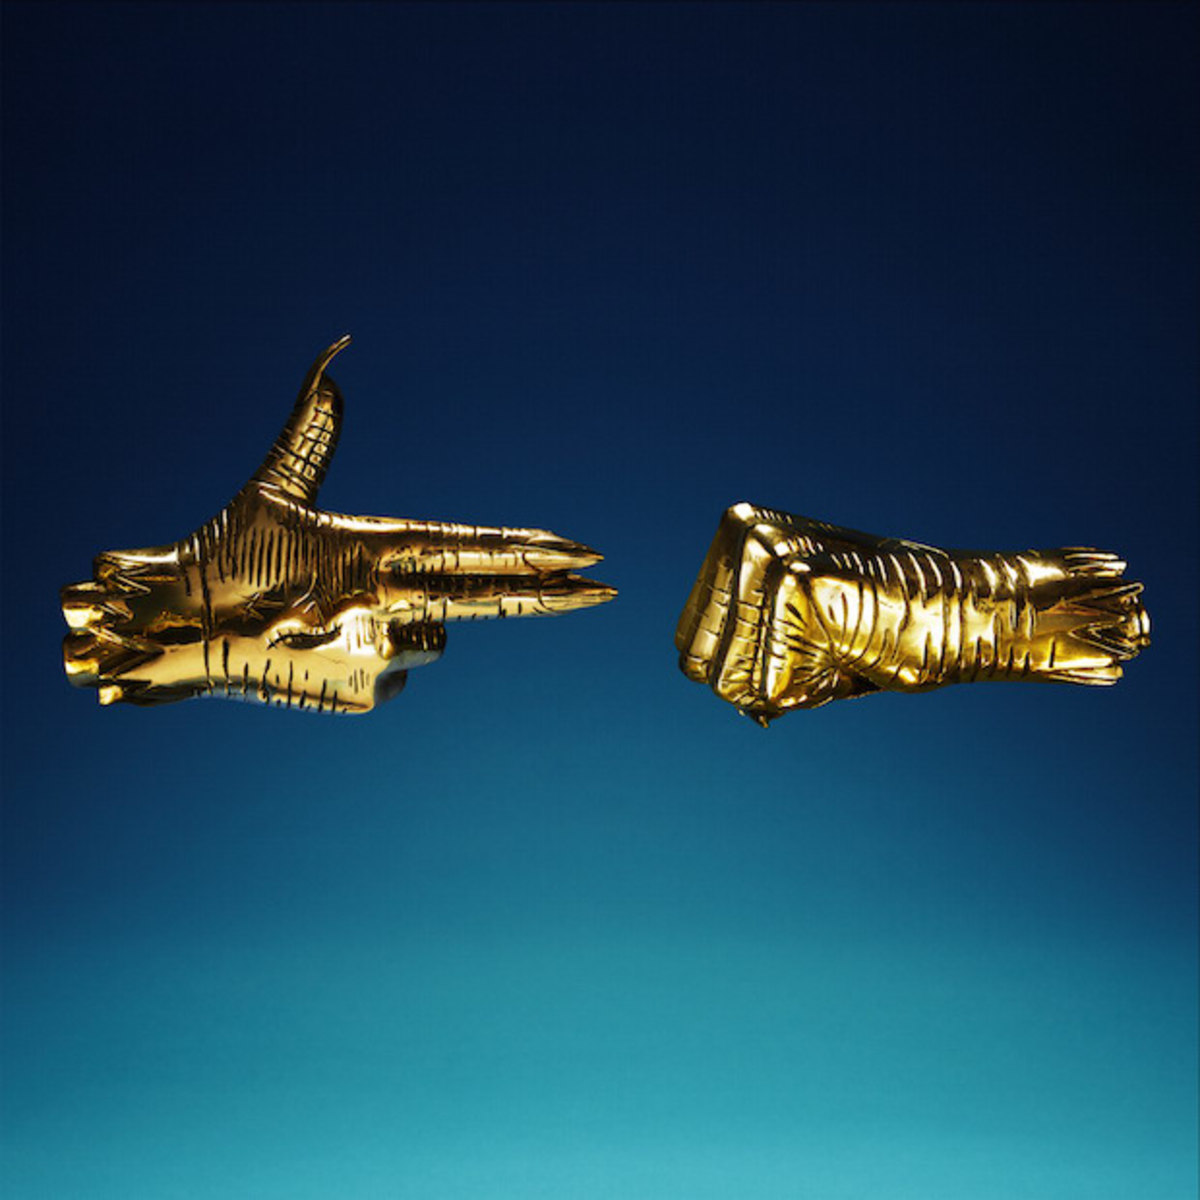 run-the-jewels-rtj3-details.jpg